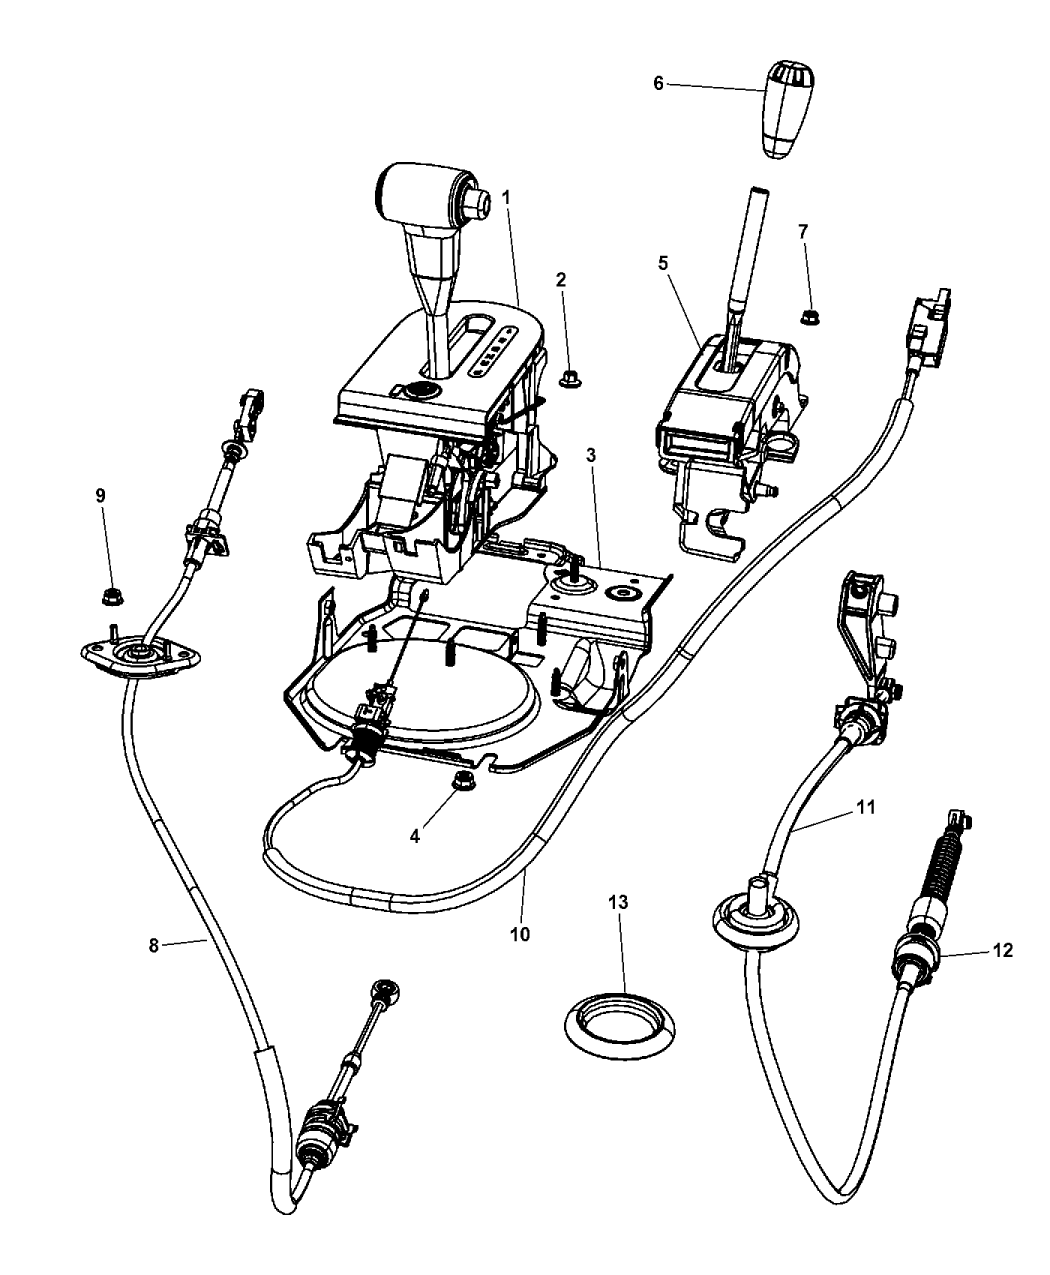 13dzf Replace Fuel Pump 1999 Jeep Cherokee Laredo moreover Jeep Cable Transfer Case Shift 52060462ad in addition Dana 44 Parts Diagram besides HP PartList also Jeep Window Quarter 1xz99fx9ad. on jeep wrangler rubicon parts diagram